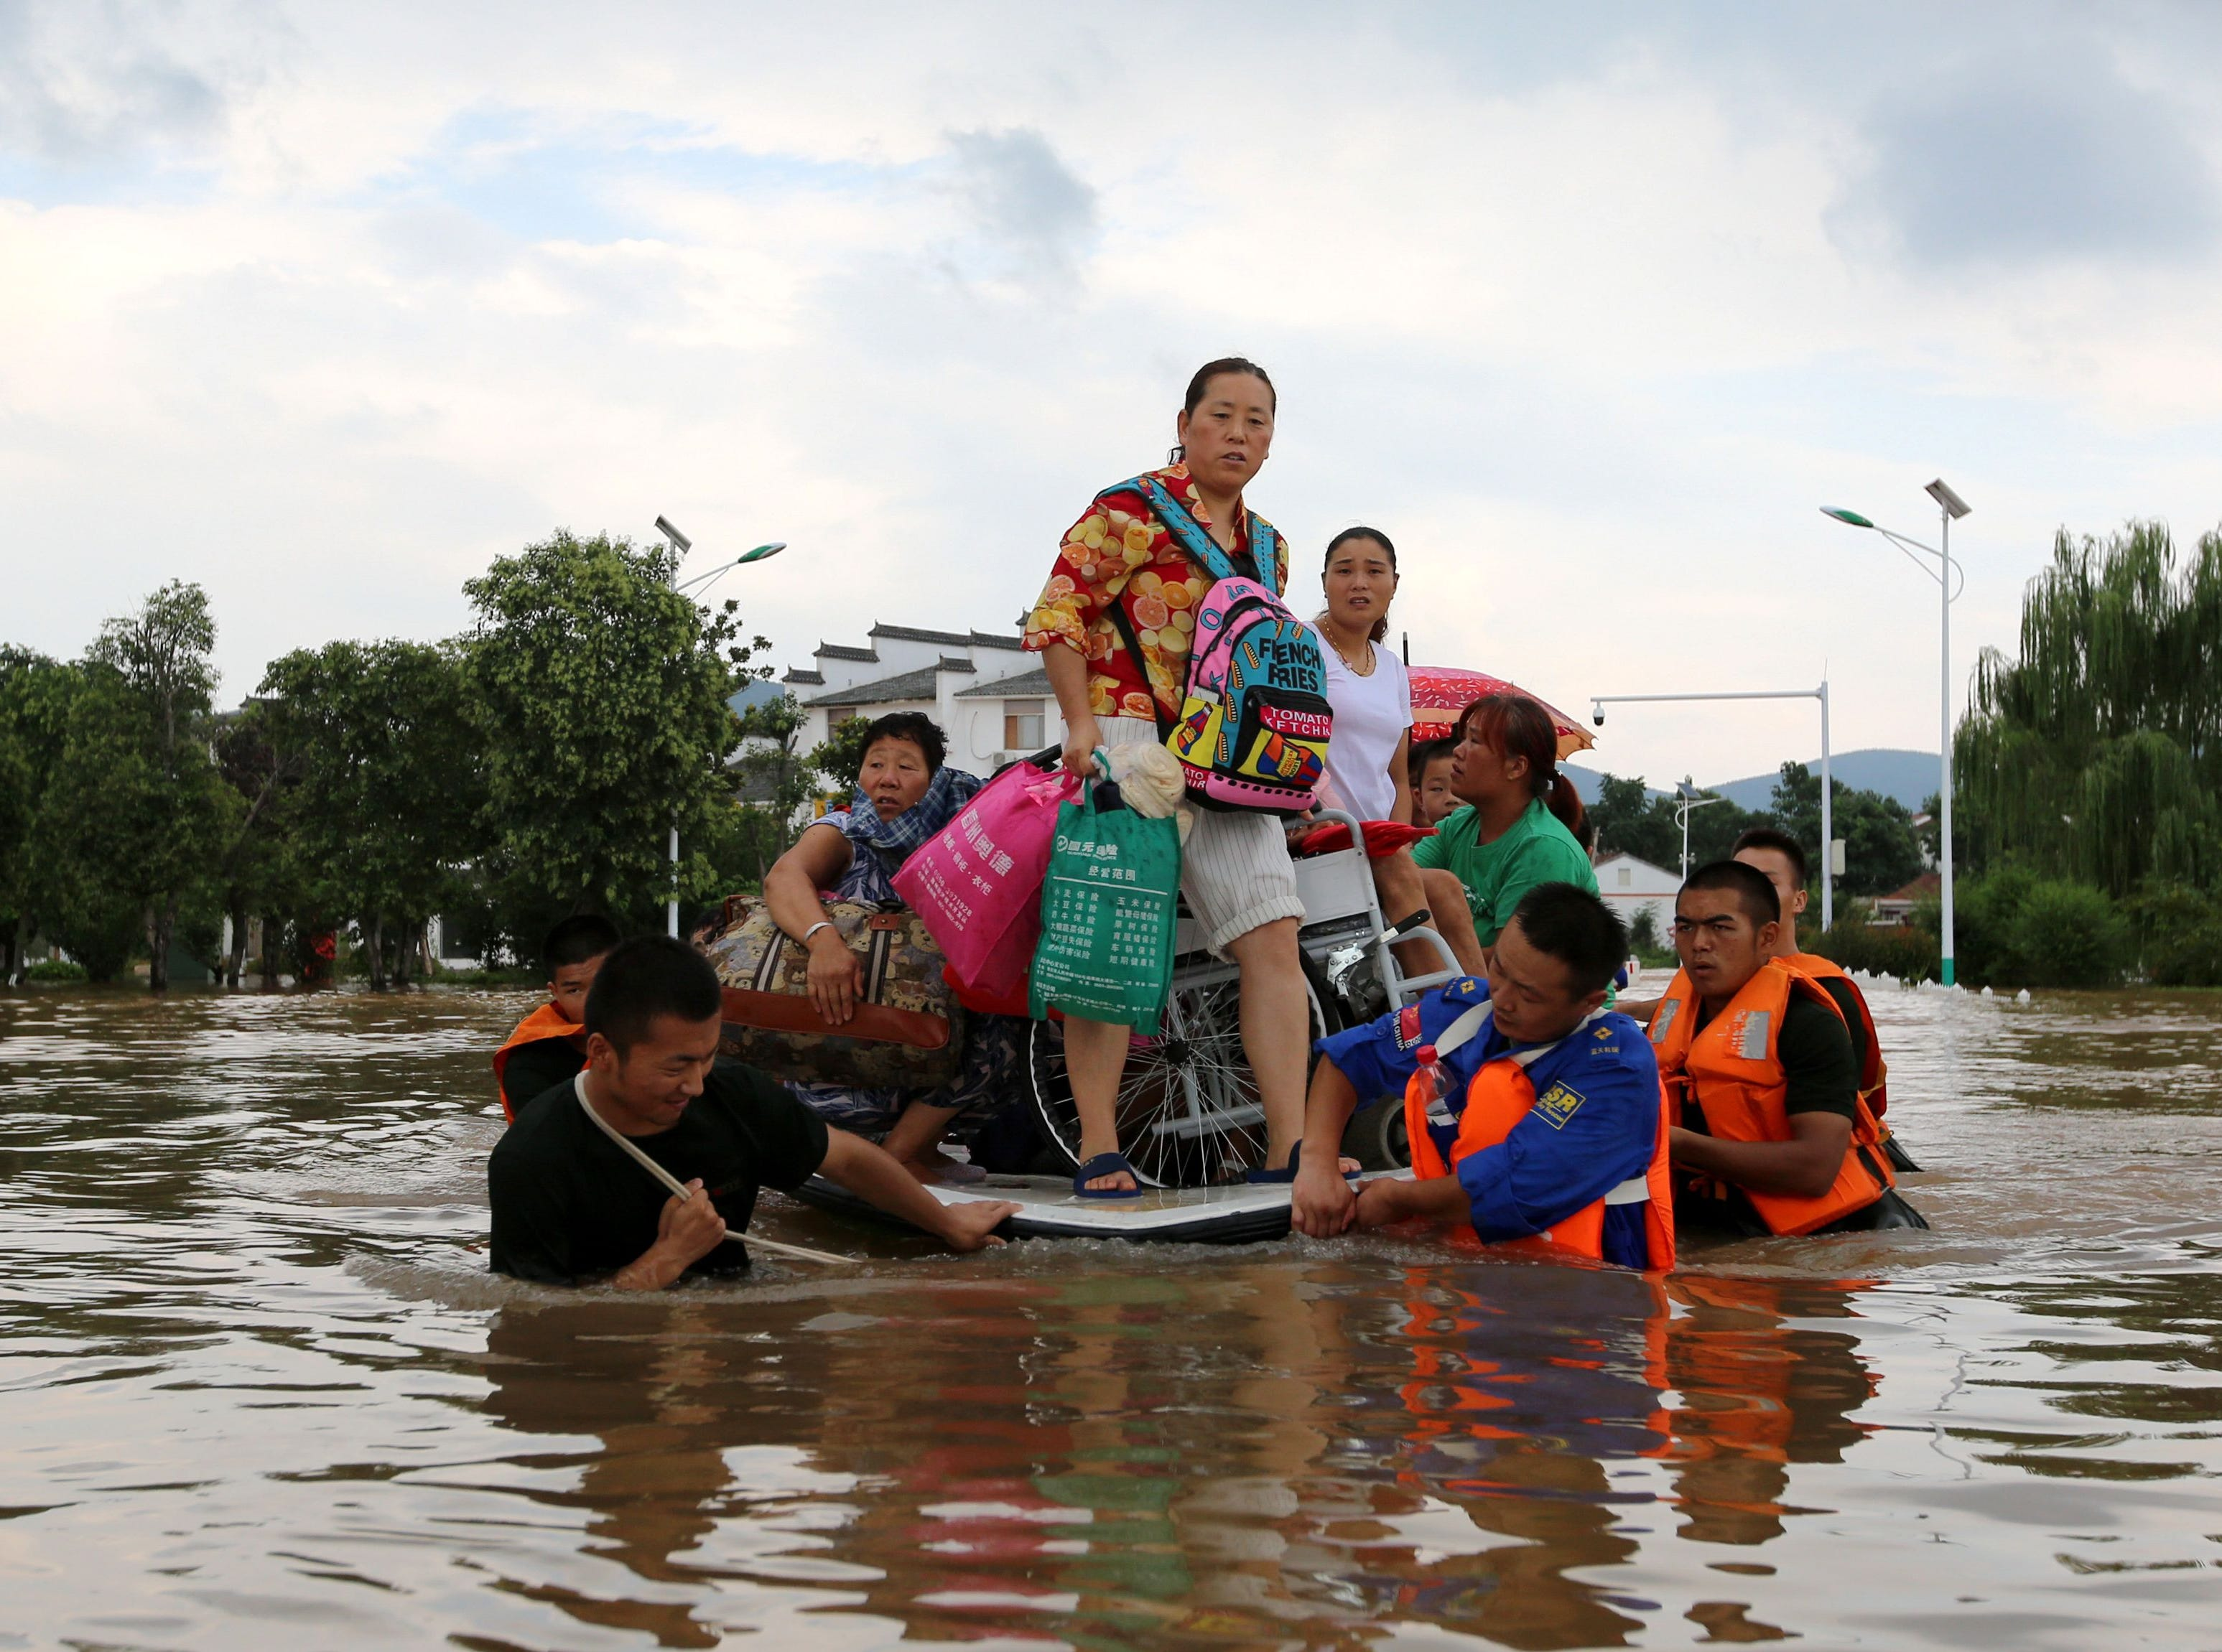 Aug. 19, 2018: Rescuers evacuate residents through floodwaters after heavy rainfall caused by Typhoon Rumbia in Huaibei, China.